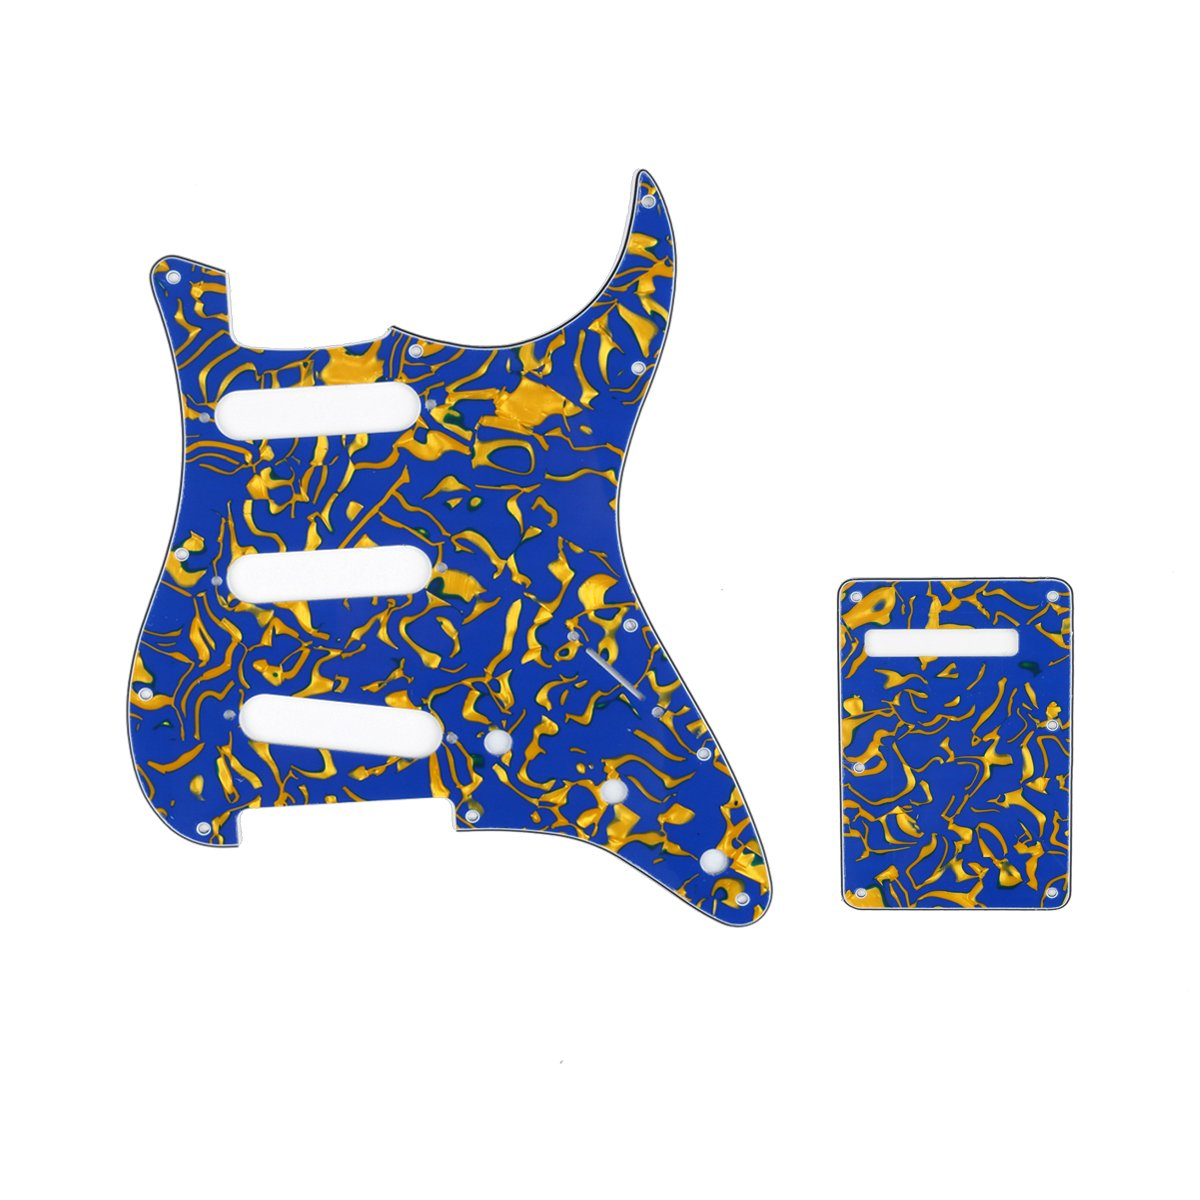 Musiclily SSS 11 Holes Strat Electric Guitar Pickguard and BackPlate Set for Fender US/Mexico Made Standard Stratocaster Modern Style Guitar Parts,4Ply Pearl Bronze MX0128MX0038